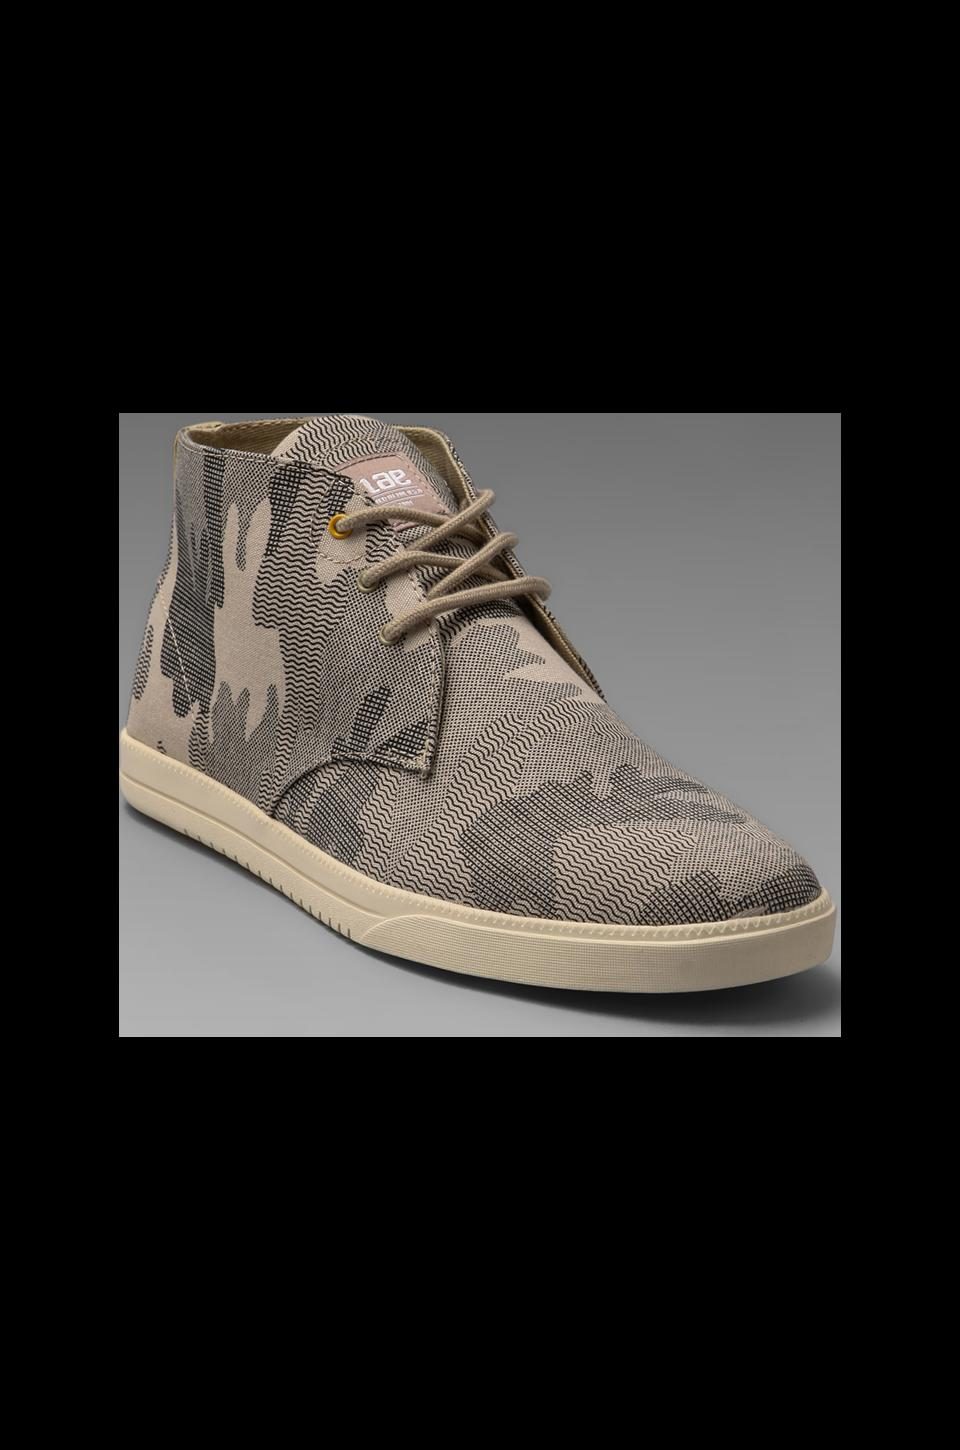 Clae Strayhorn Canvas in Tan Camouflage